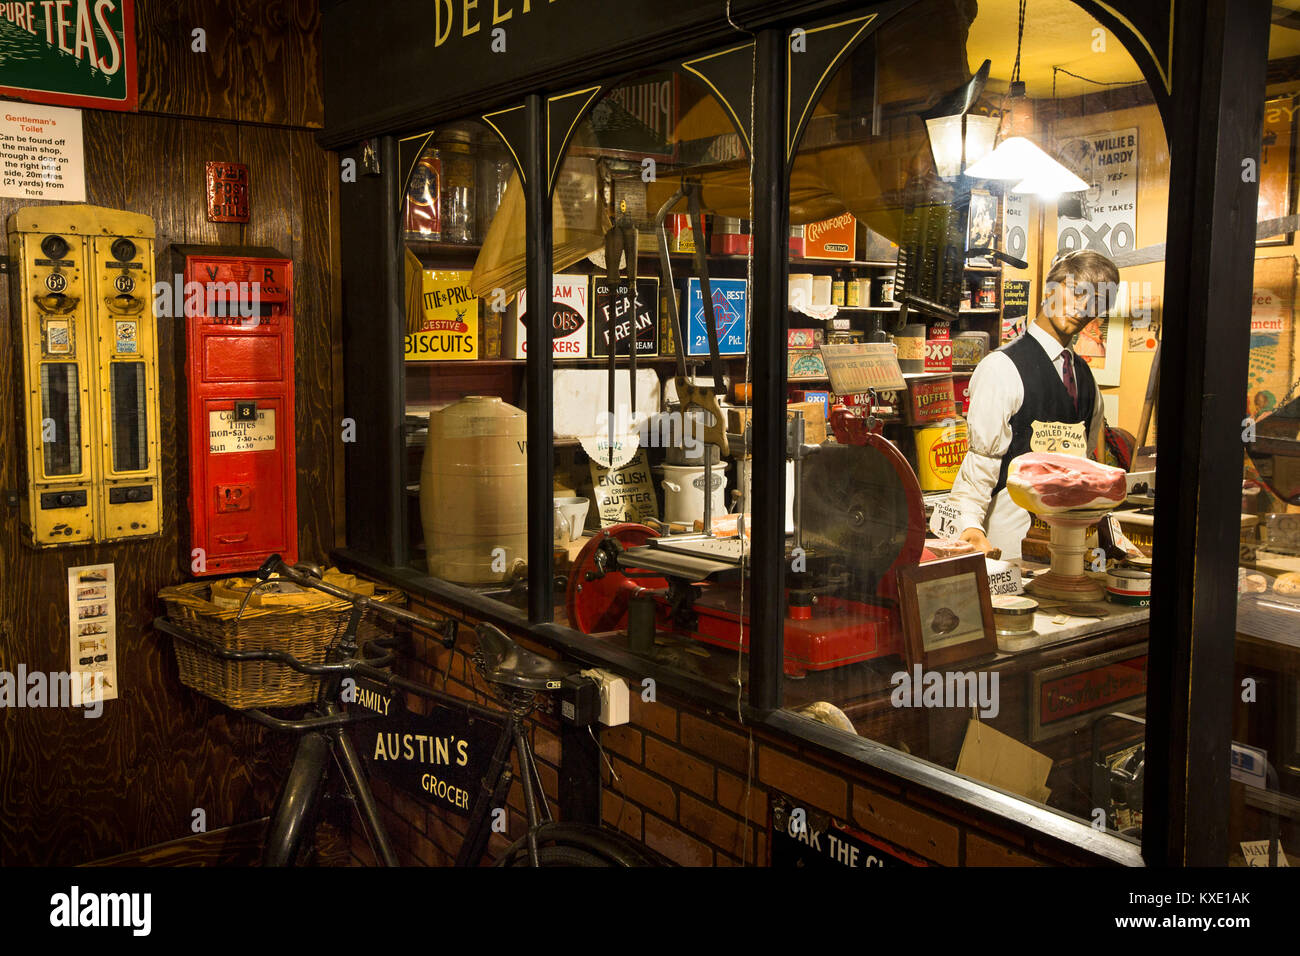 UK, England, Cheshire, Nantwich, Hospital Street, AT Welch (Austin's) Yesteryear Shop display Stock Photo